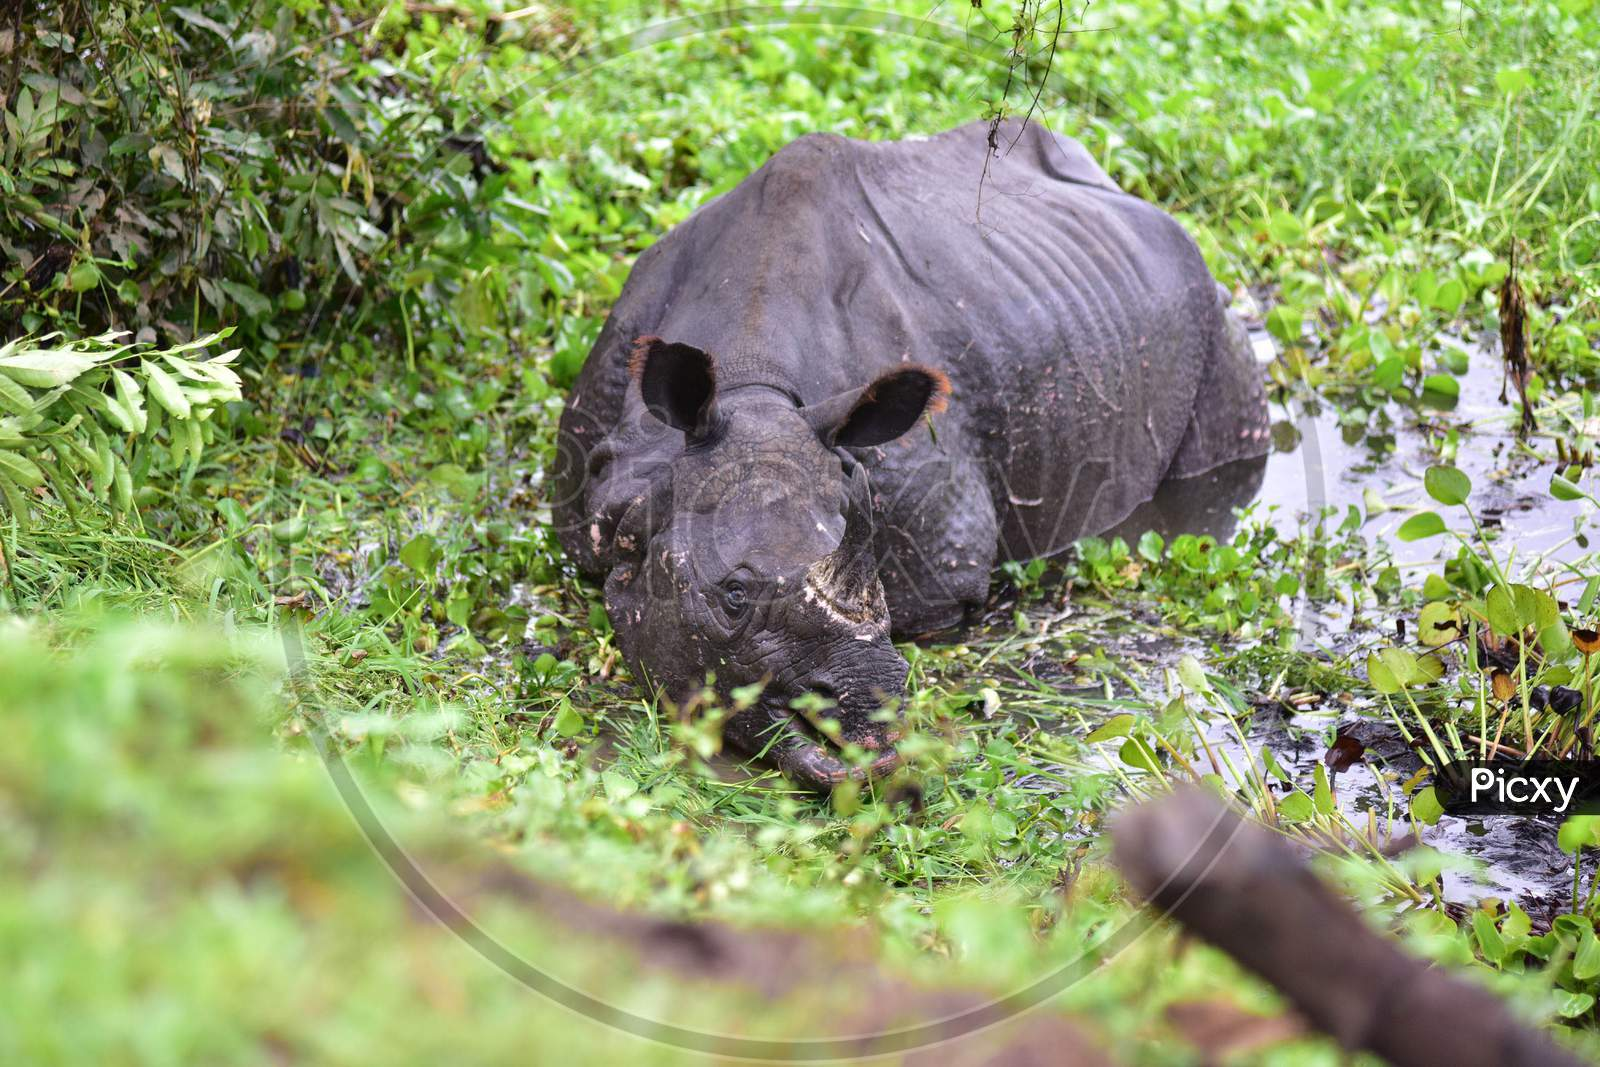 A rhino rests near National Highway 37 after it strayed out of the flood-affected Kaziranga National Park in Nagaon, Assam on July 18, 2020